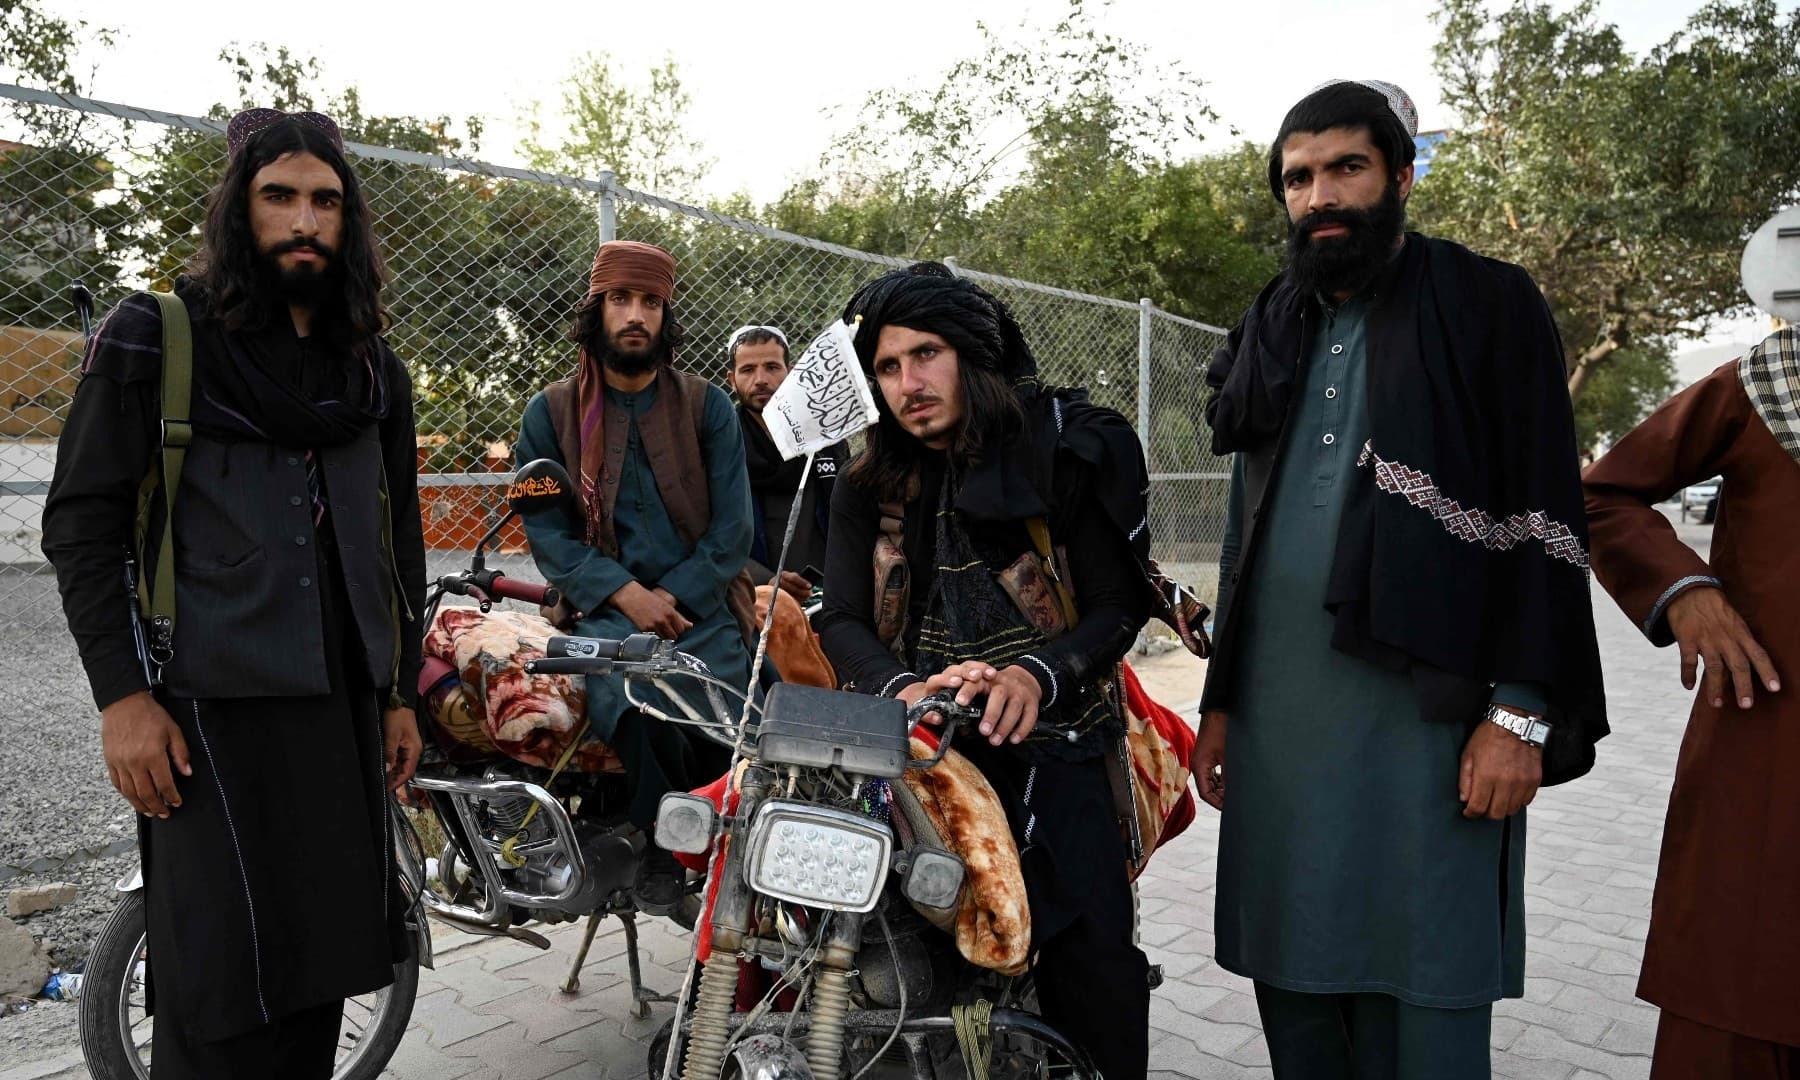 Taliban fighters stand along a road in Kabul on August 18 after the Taliban's military takeover of Afghanistan. — AFP